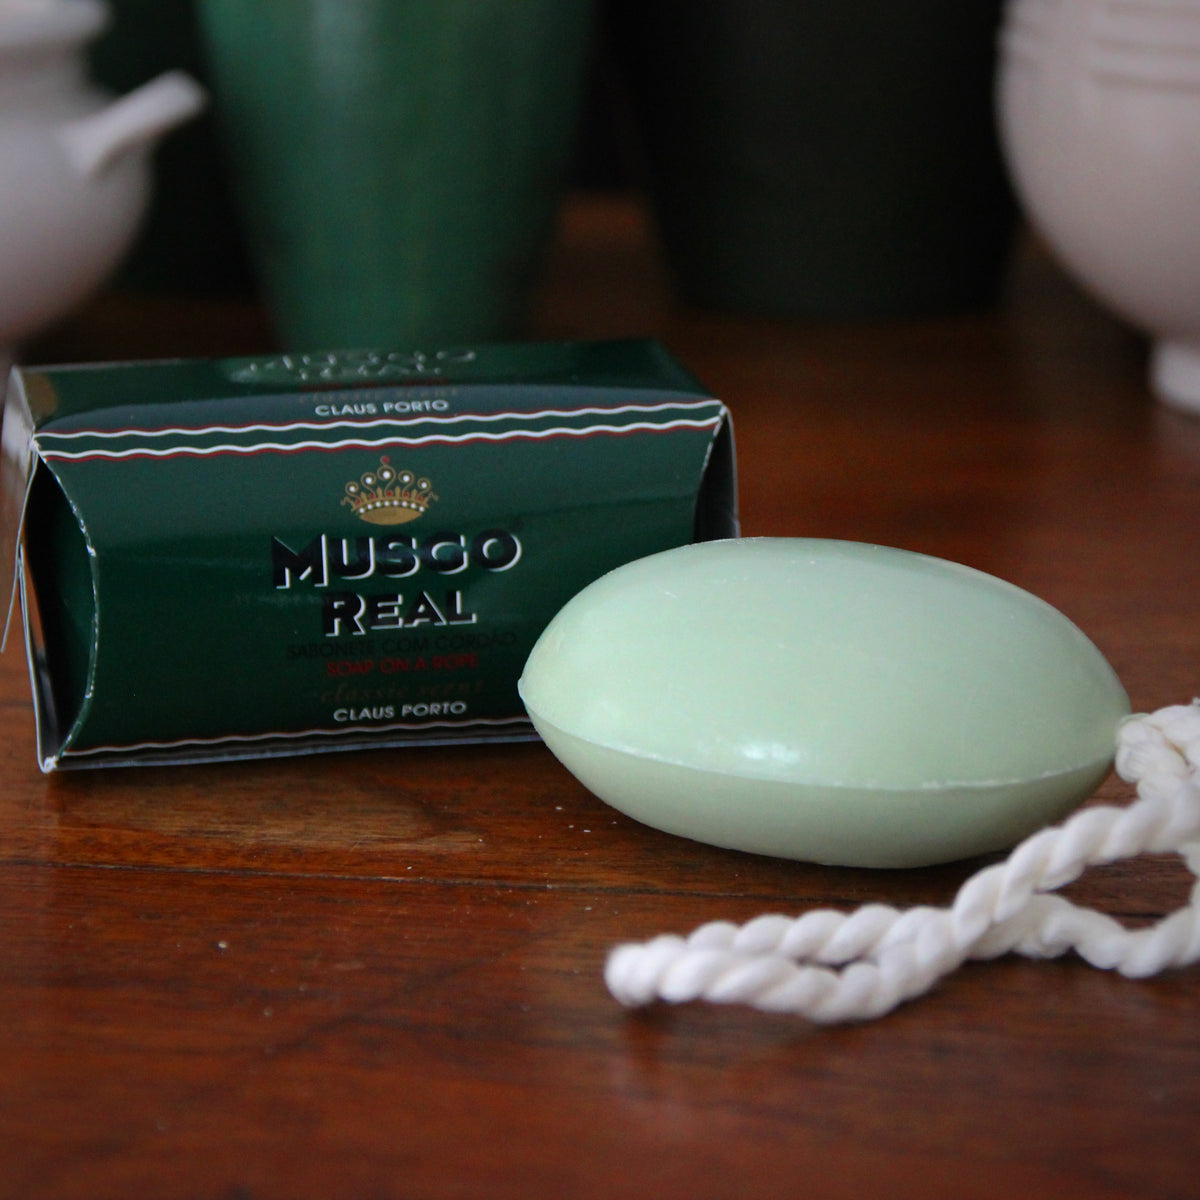 Musgo Real Soap-on-a-Rope